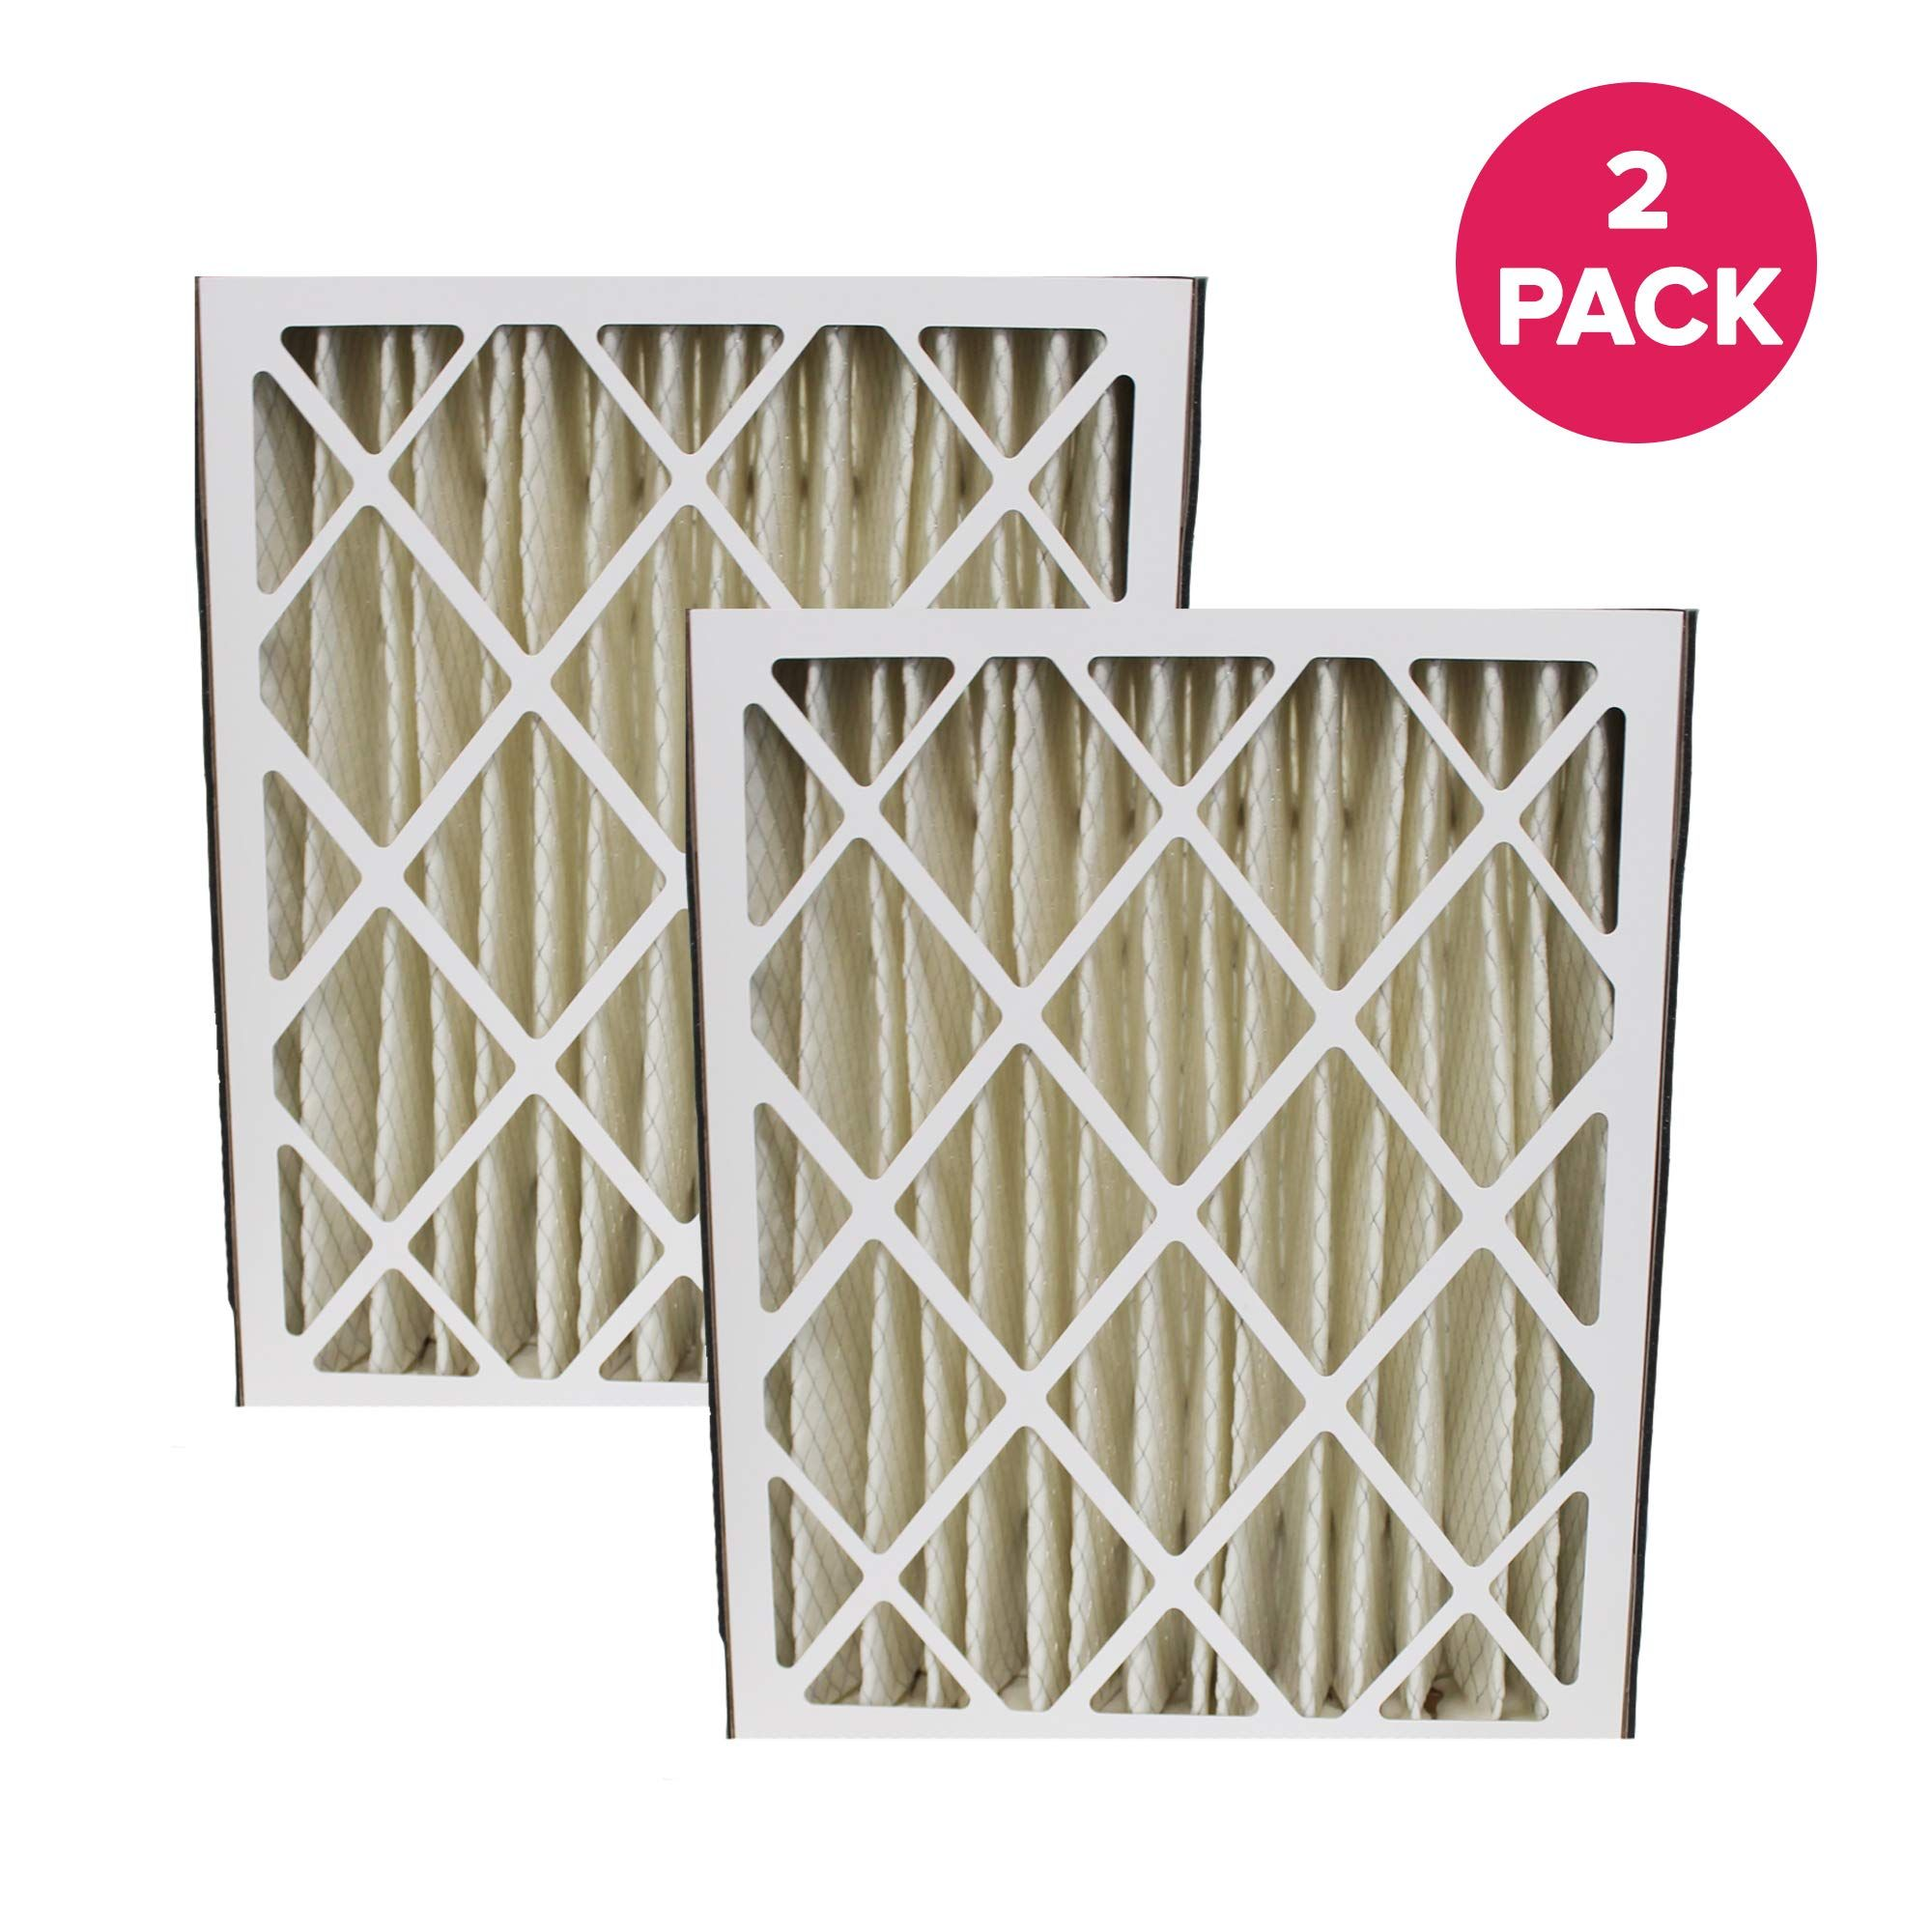 Think Crucial 2 Replacements Compatible With Carrier 20x25x5 Mf2025 And M8 1056 Pleated Furnace Air Filter 20 X 25 X 5 Merv 8 Furnace Filters Furnace Merv